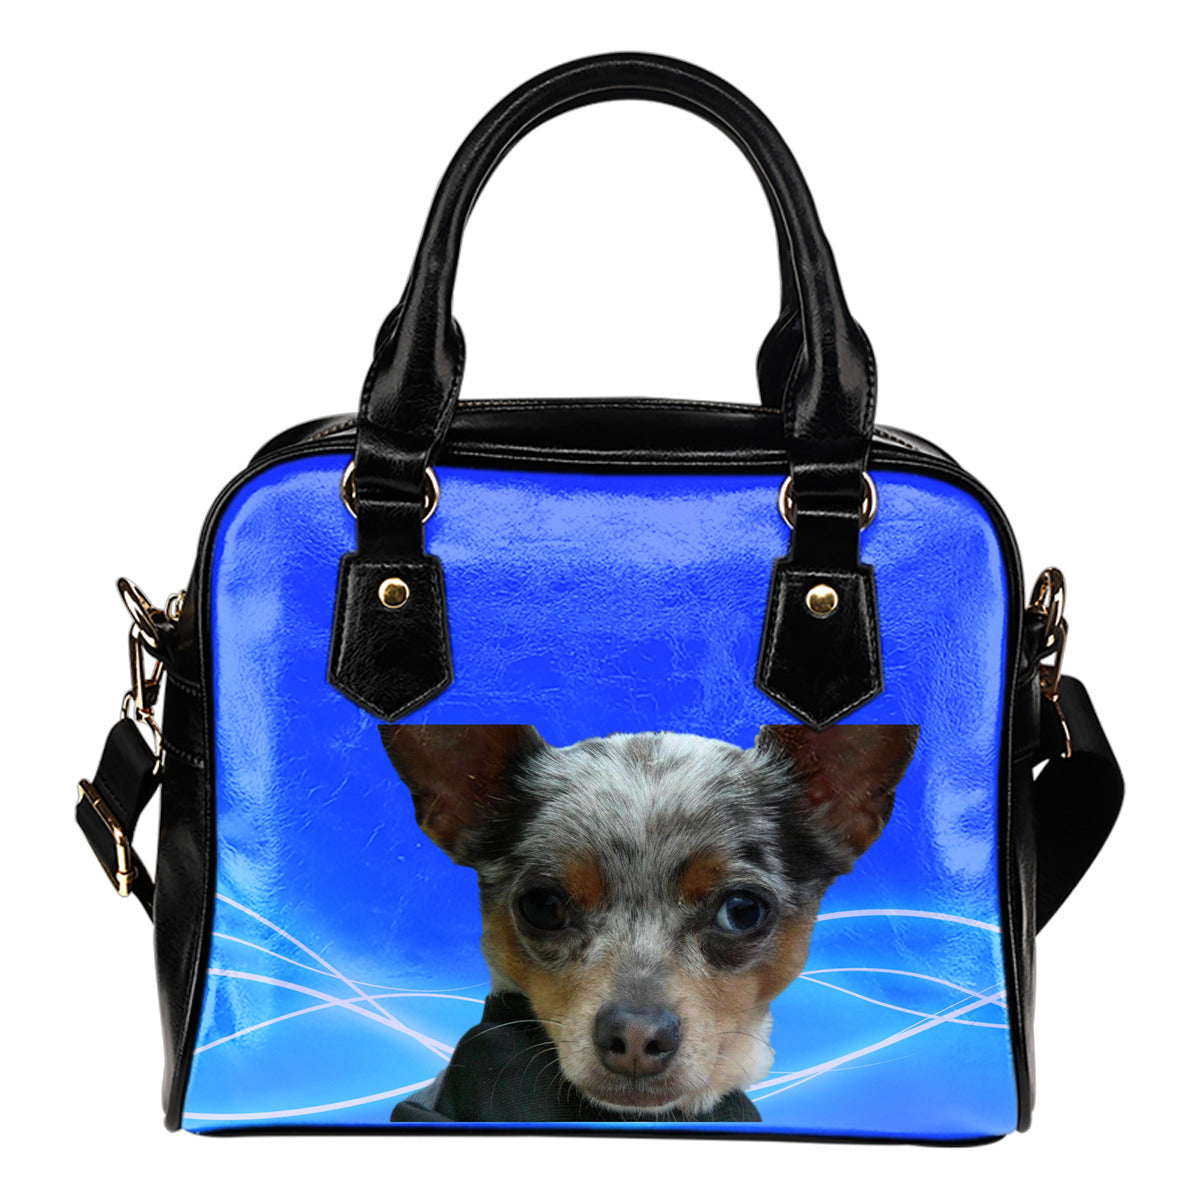 Chihuahua Shoulder Bag - Blue Merle